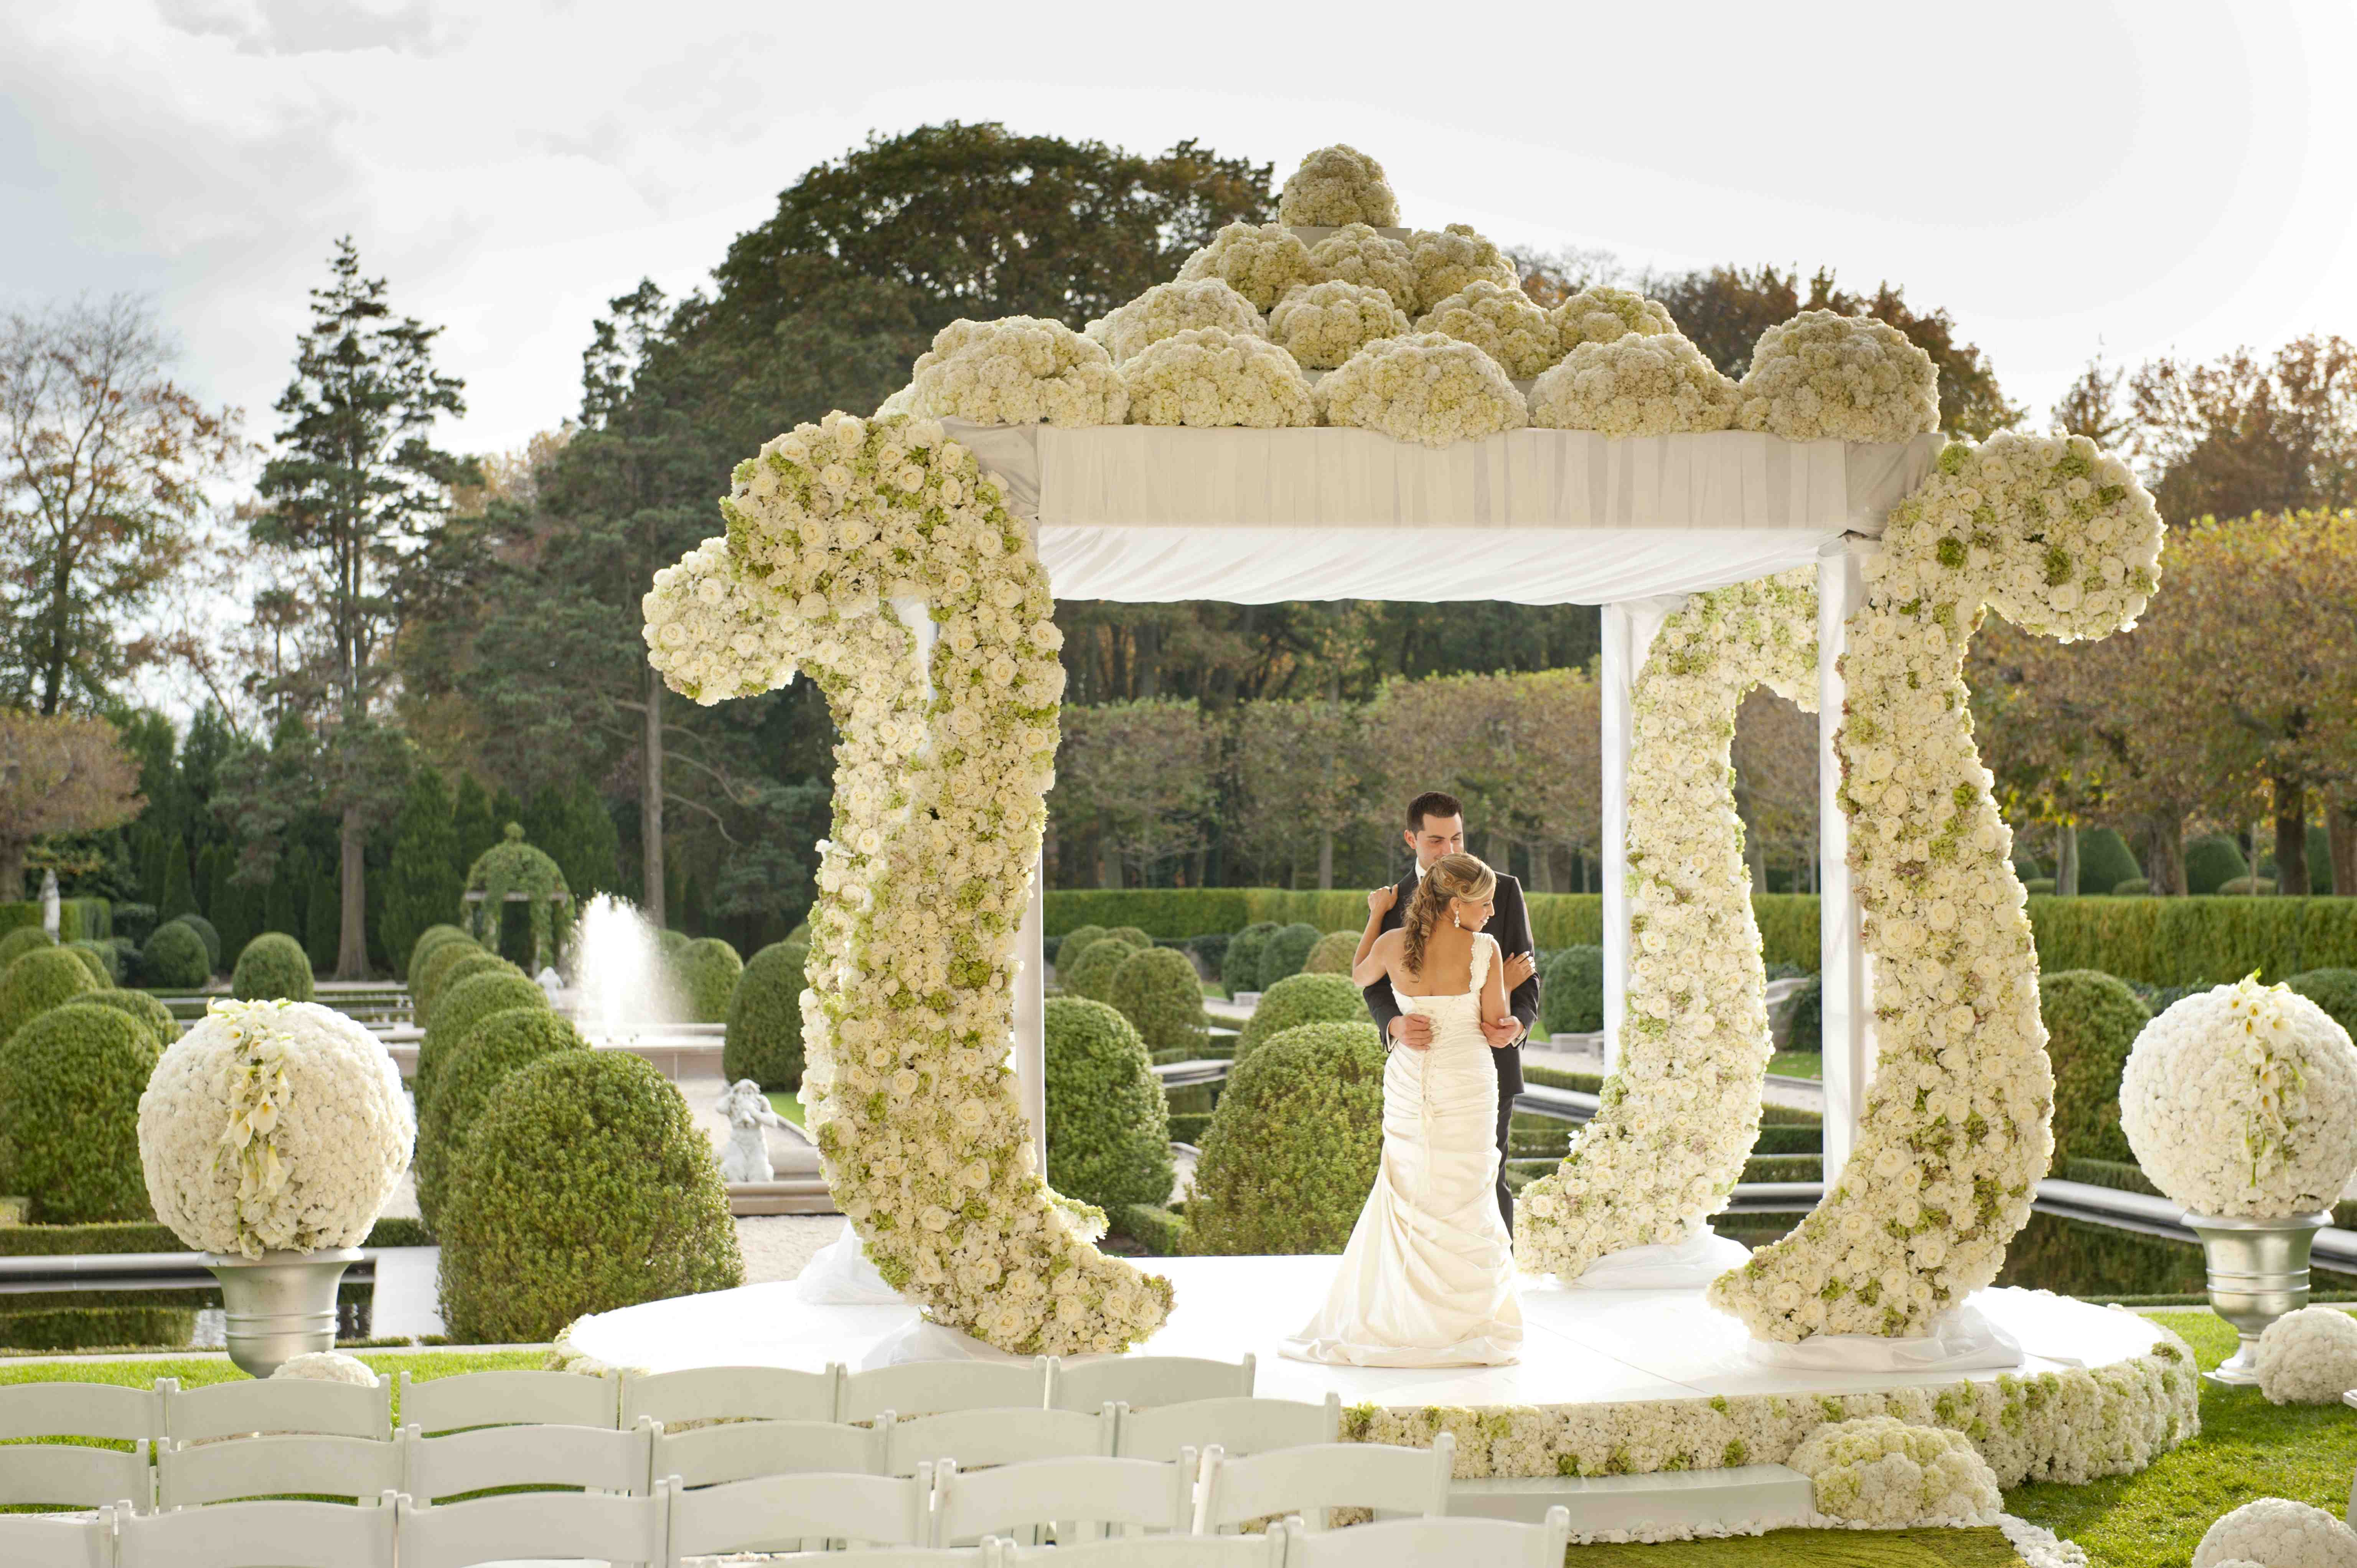 large wedding arbor with white flowers and whimsical design